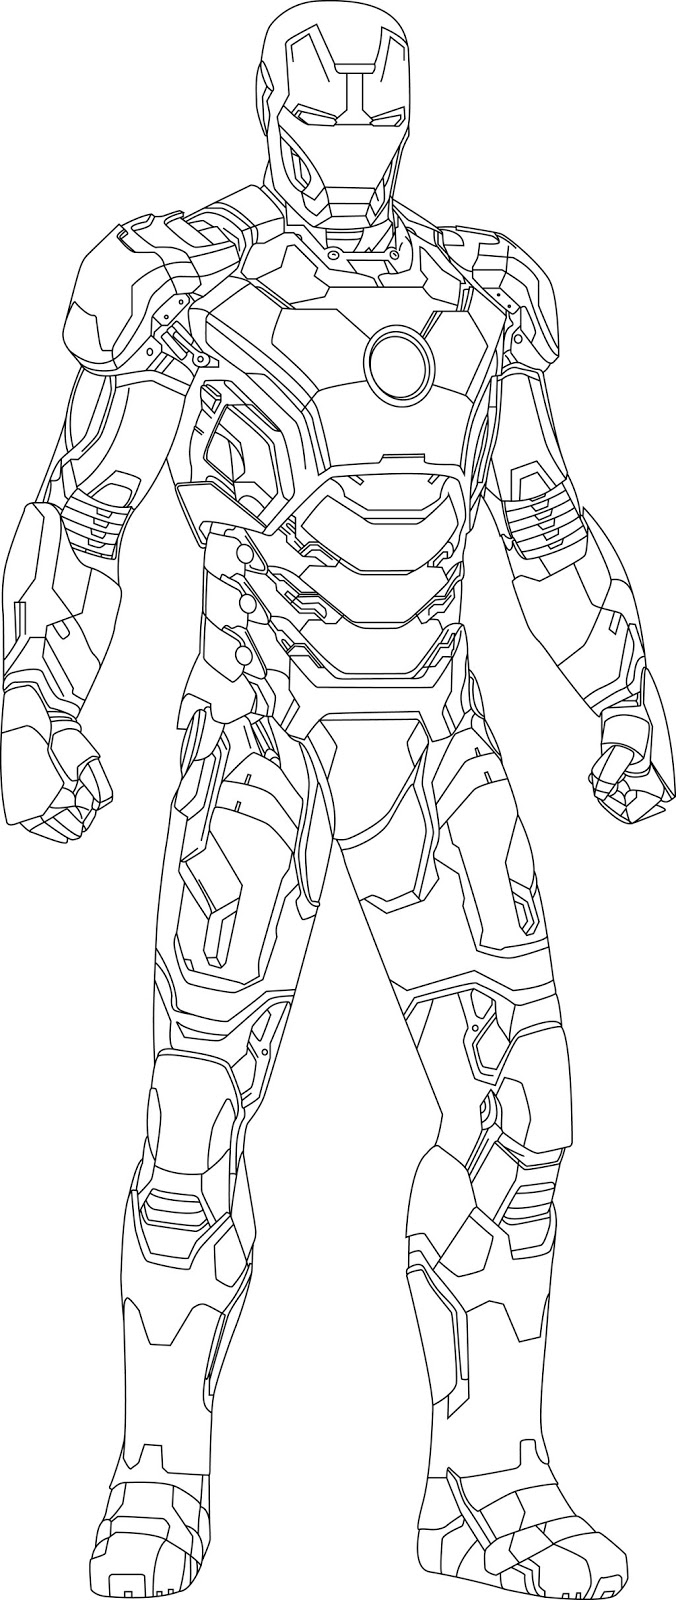 avengers printable coloring pages avengers coloring pages to download and print for free coloring pages avengers printable